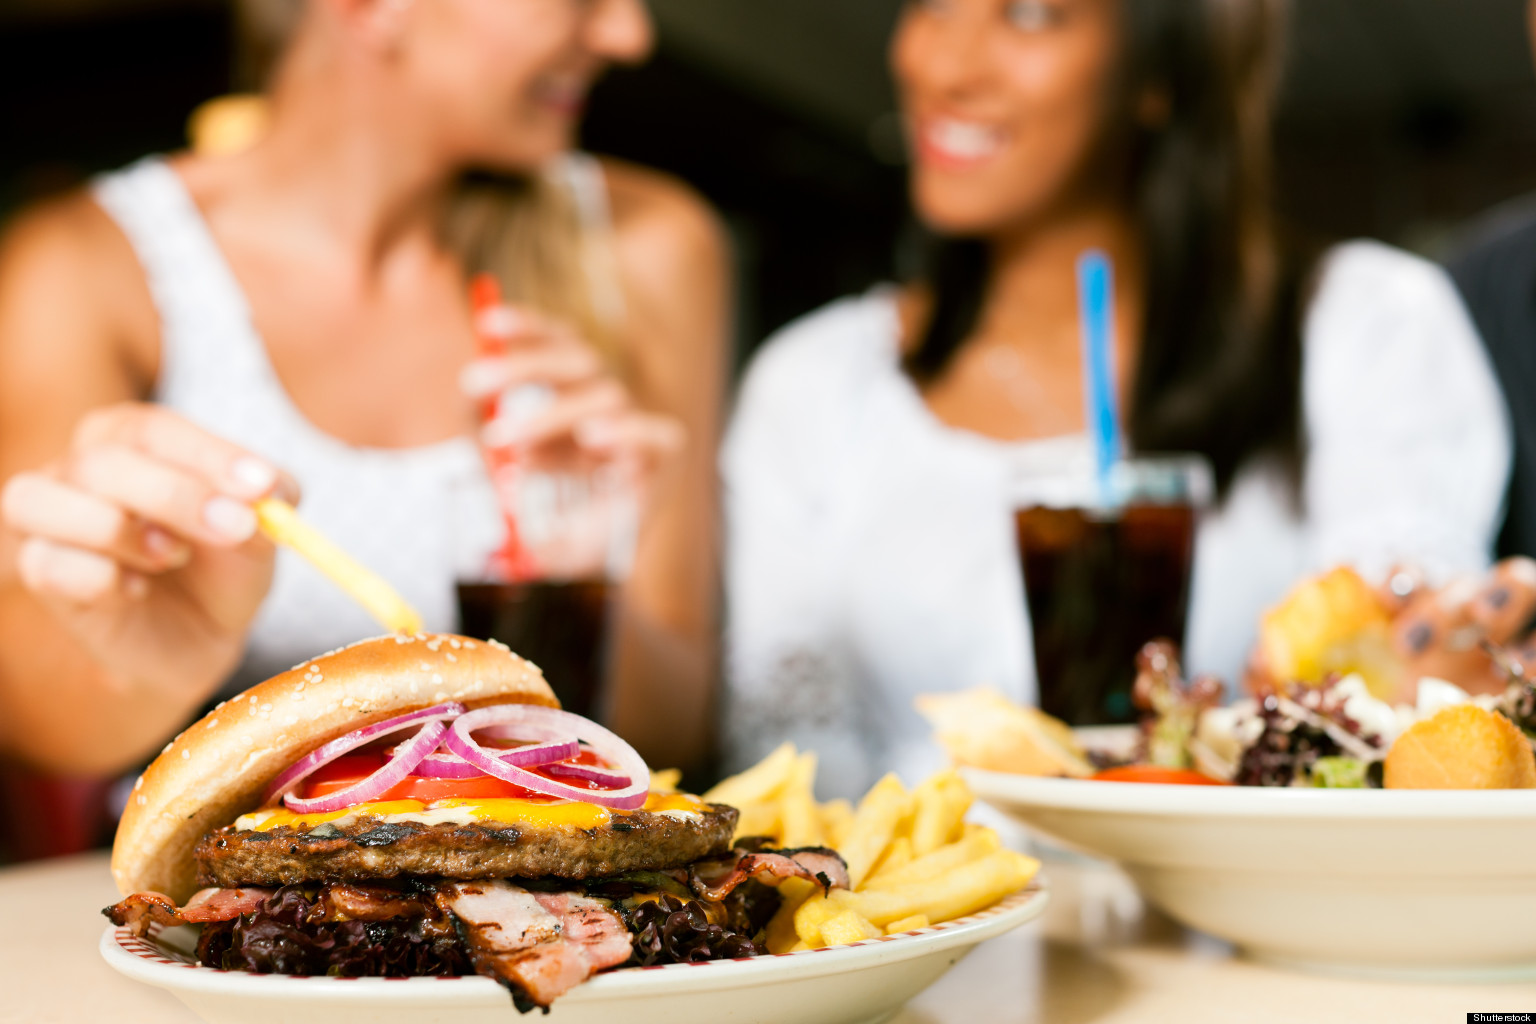 Comfort Eating Could Make You Feel Worse In The Long Run Research Finds